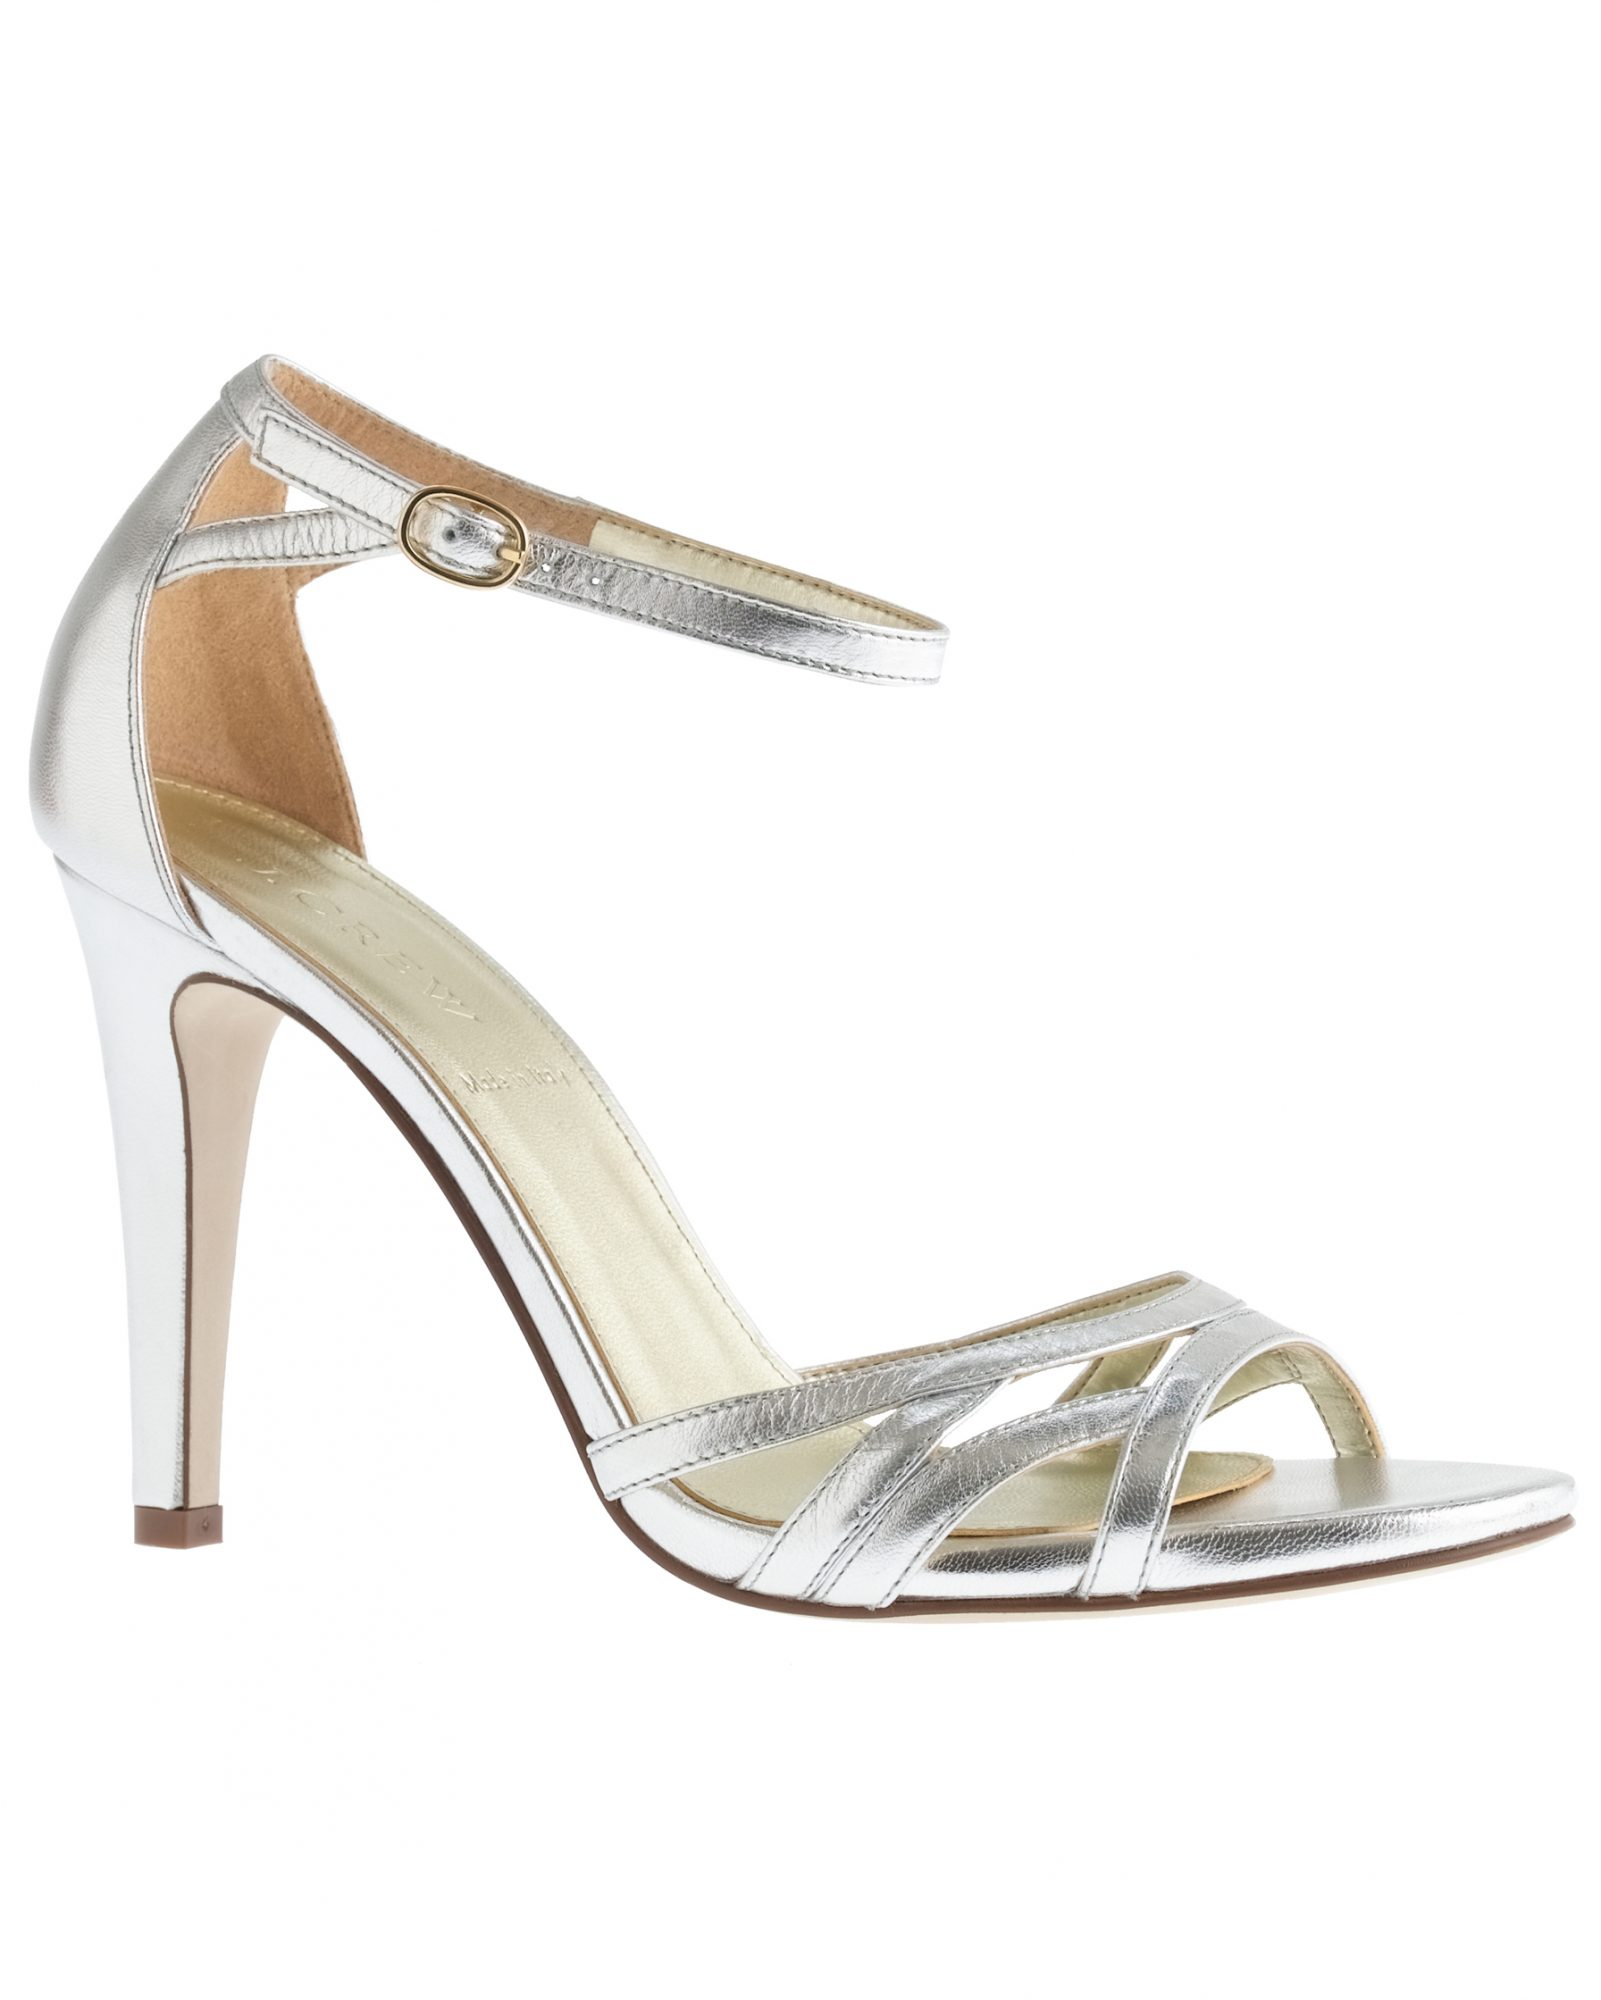 j-crew-shoes-msw-fall13.jpg